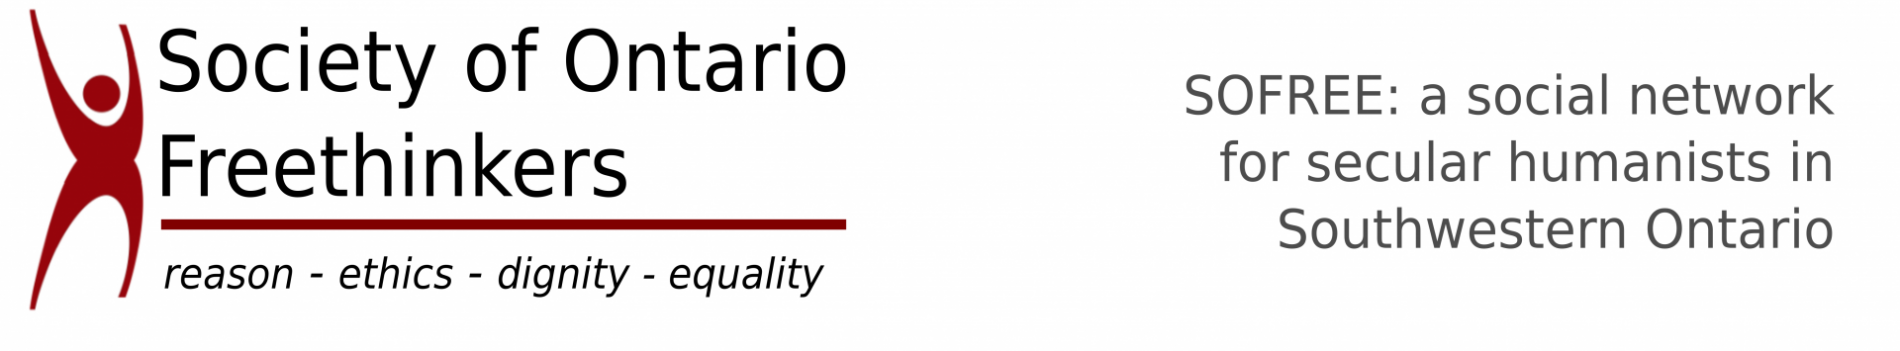 Society of Ontario Freethinkers